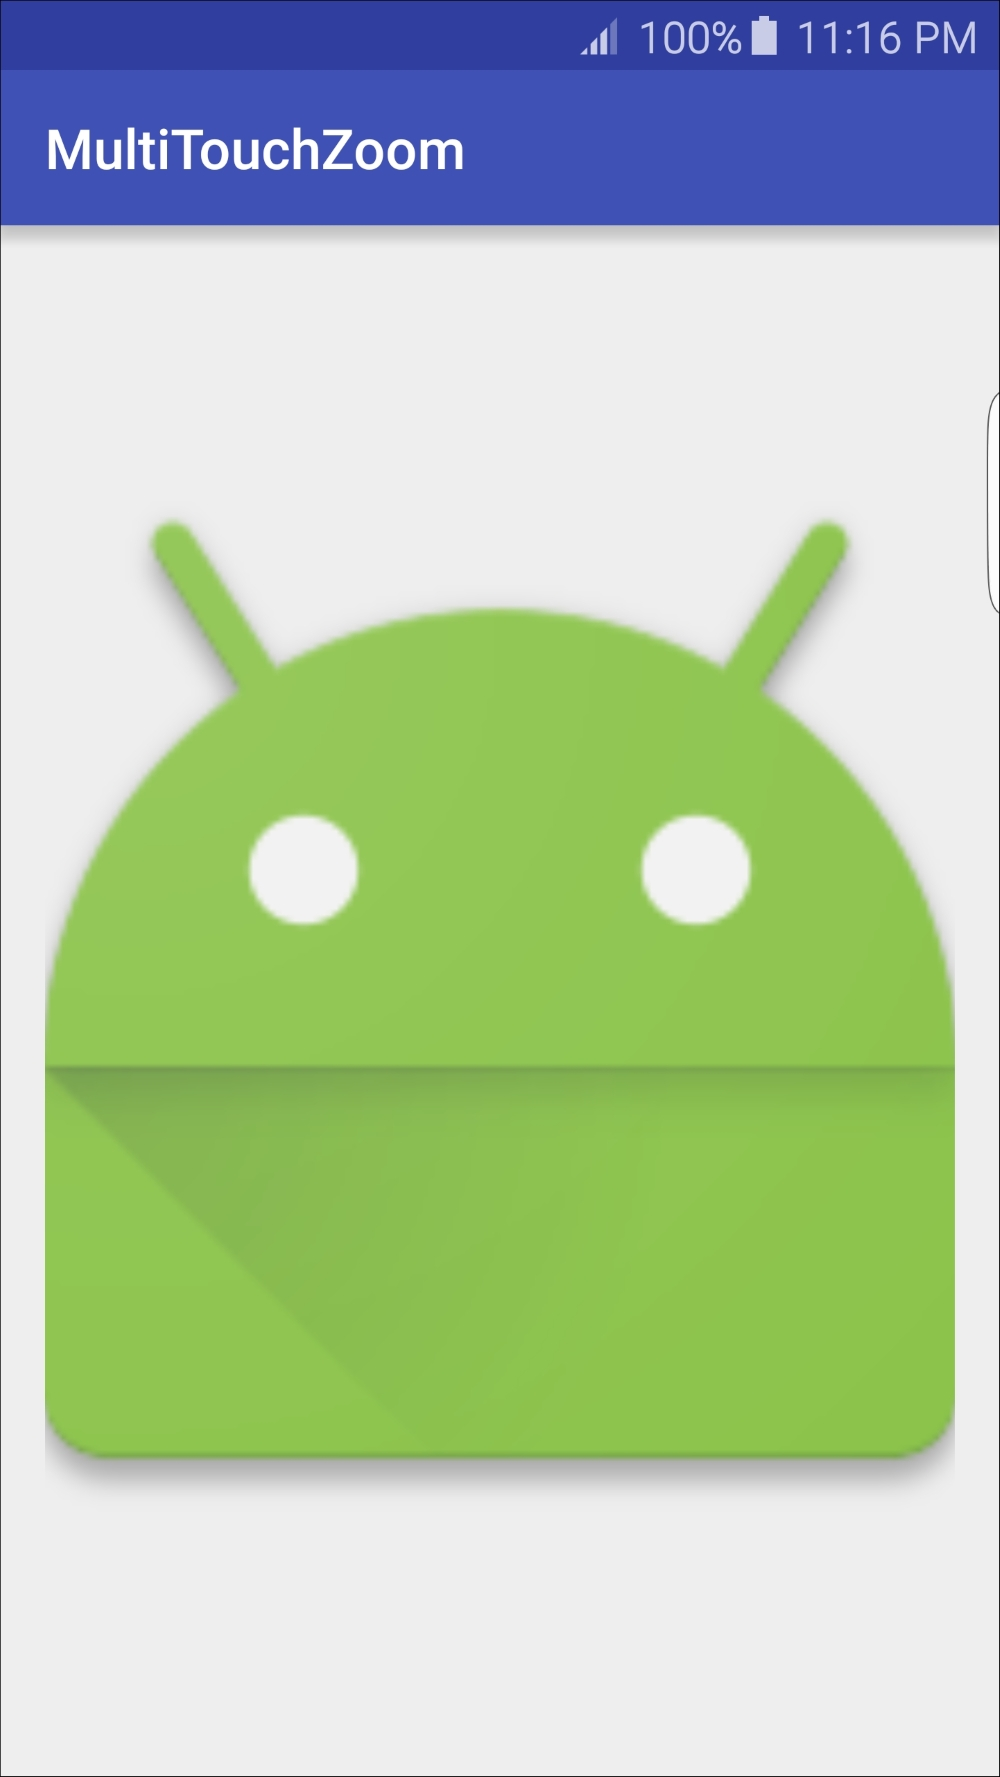 Pinch-to-zoom with multi-touch gestures - Android